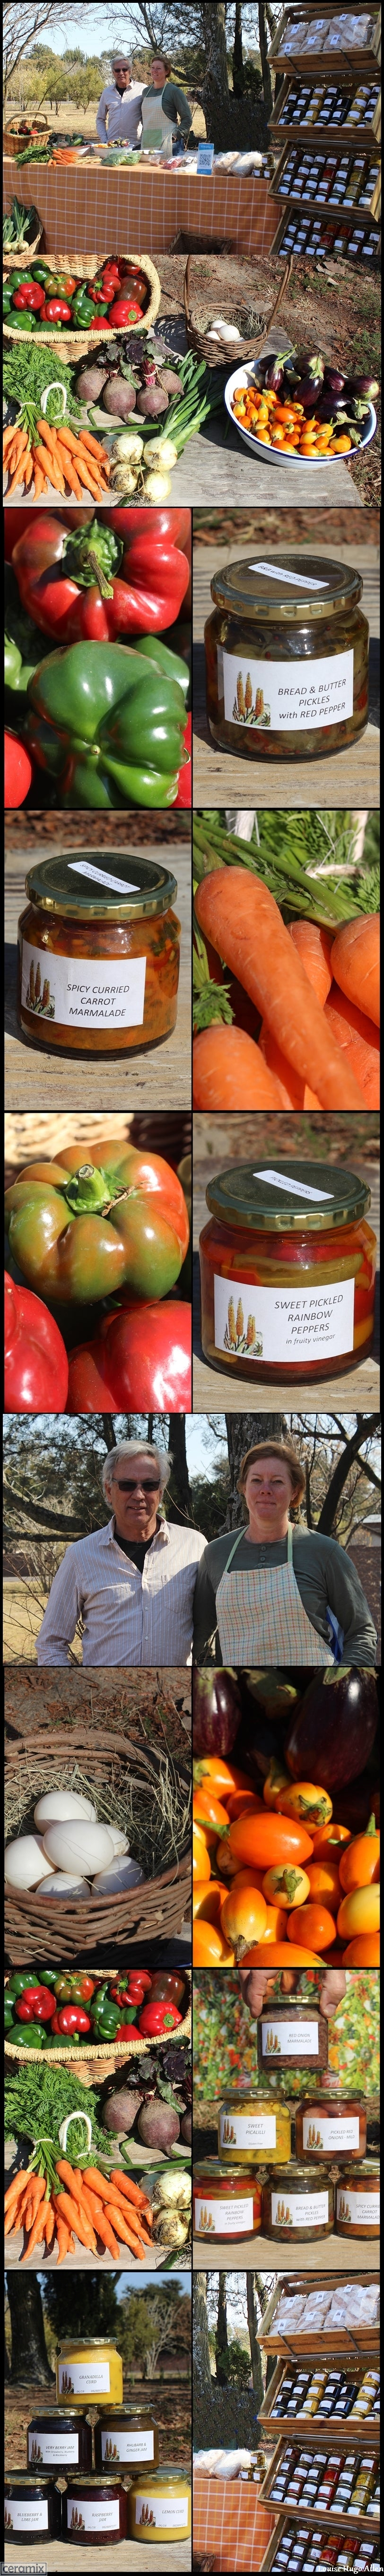 Aloe Dale Farm produces organic fruit, vegetables, artisanal style preserves, pickles, jams, cheeses and breads